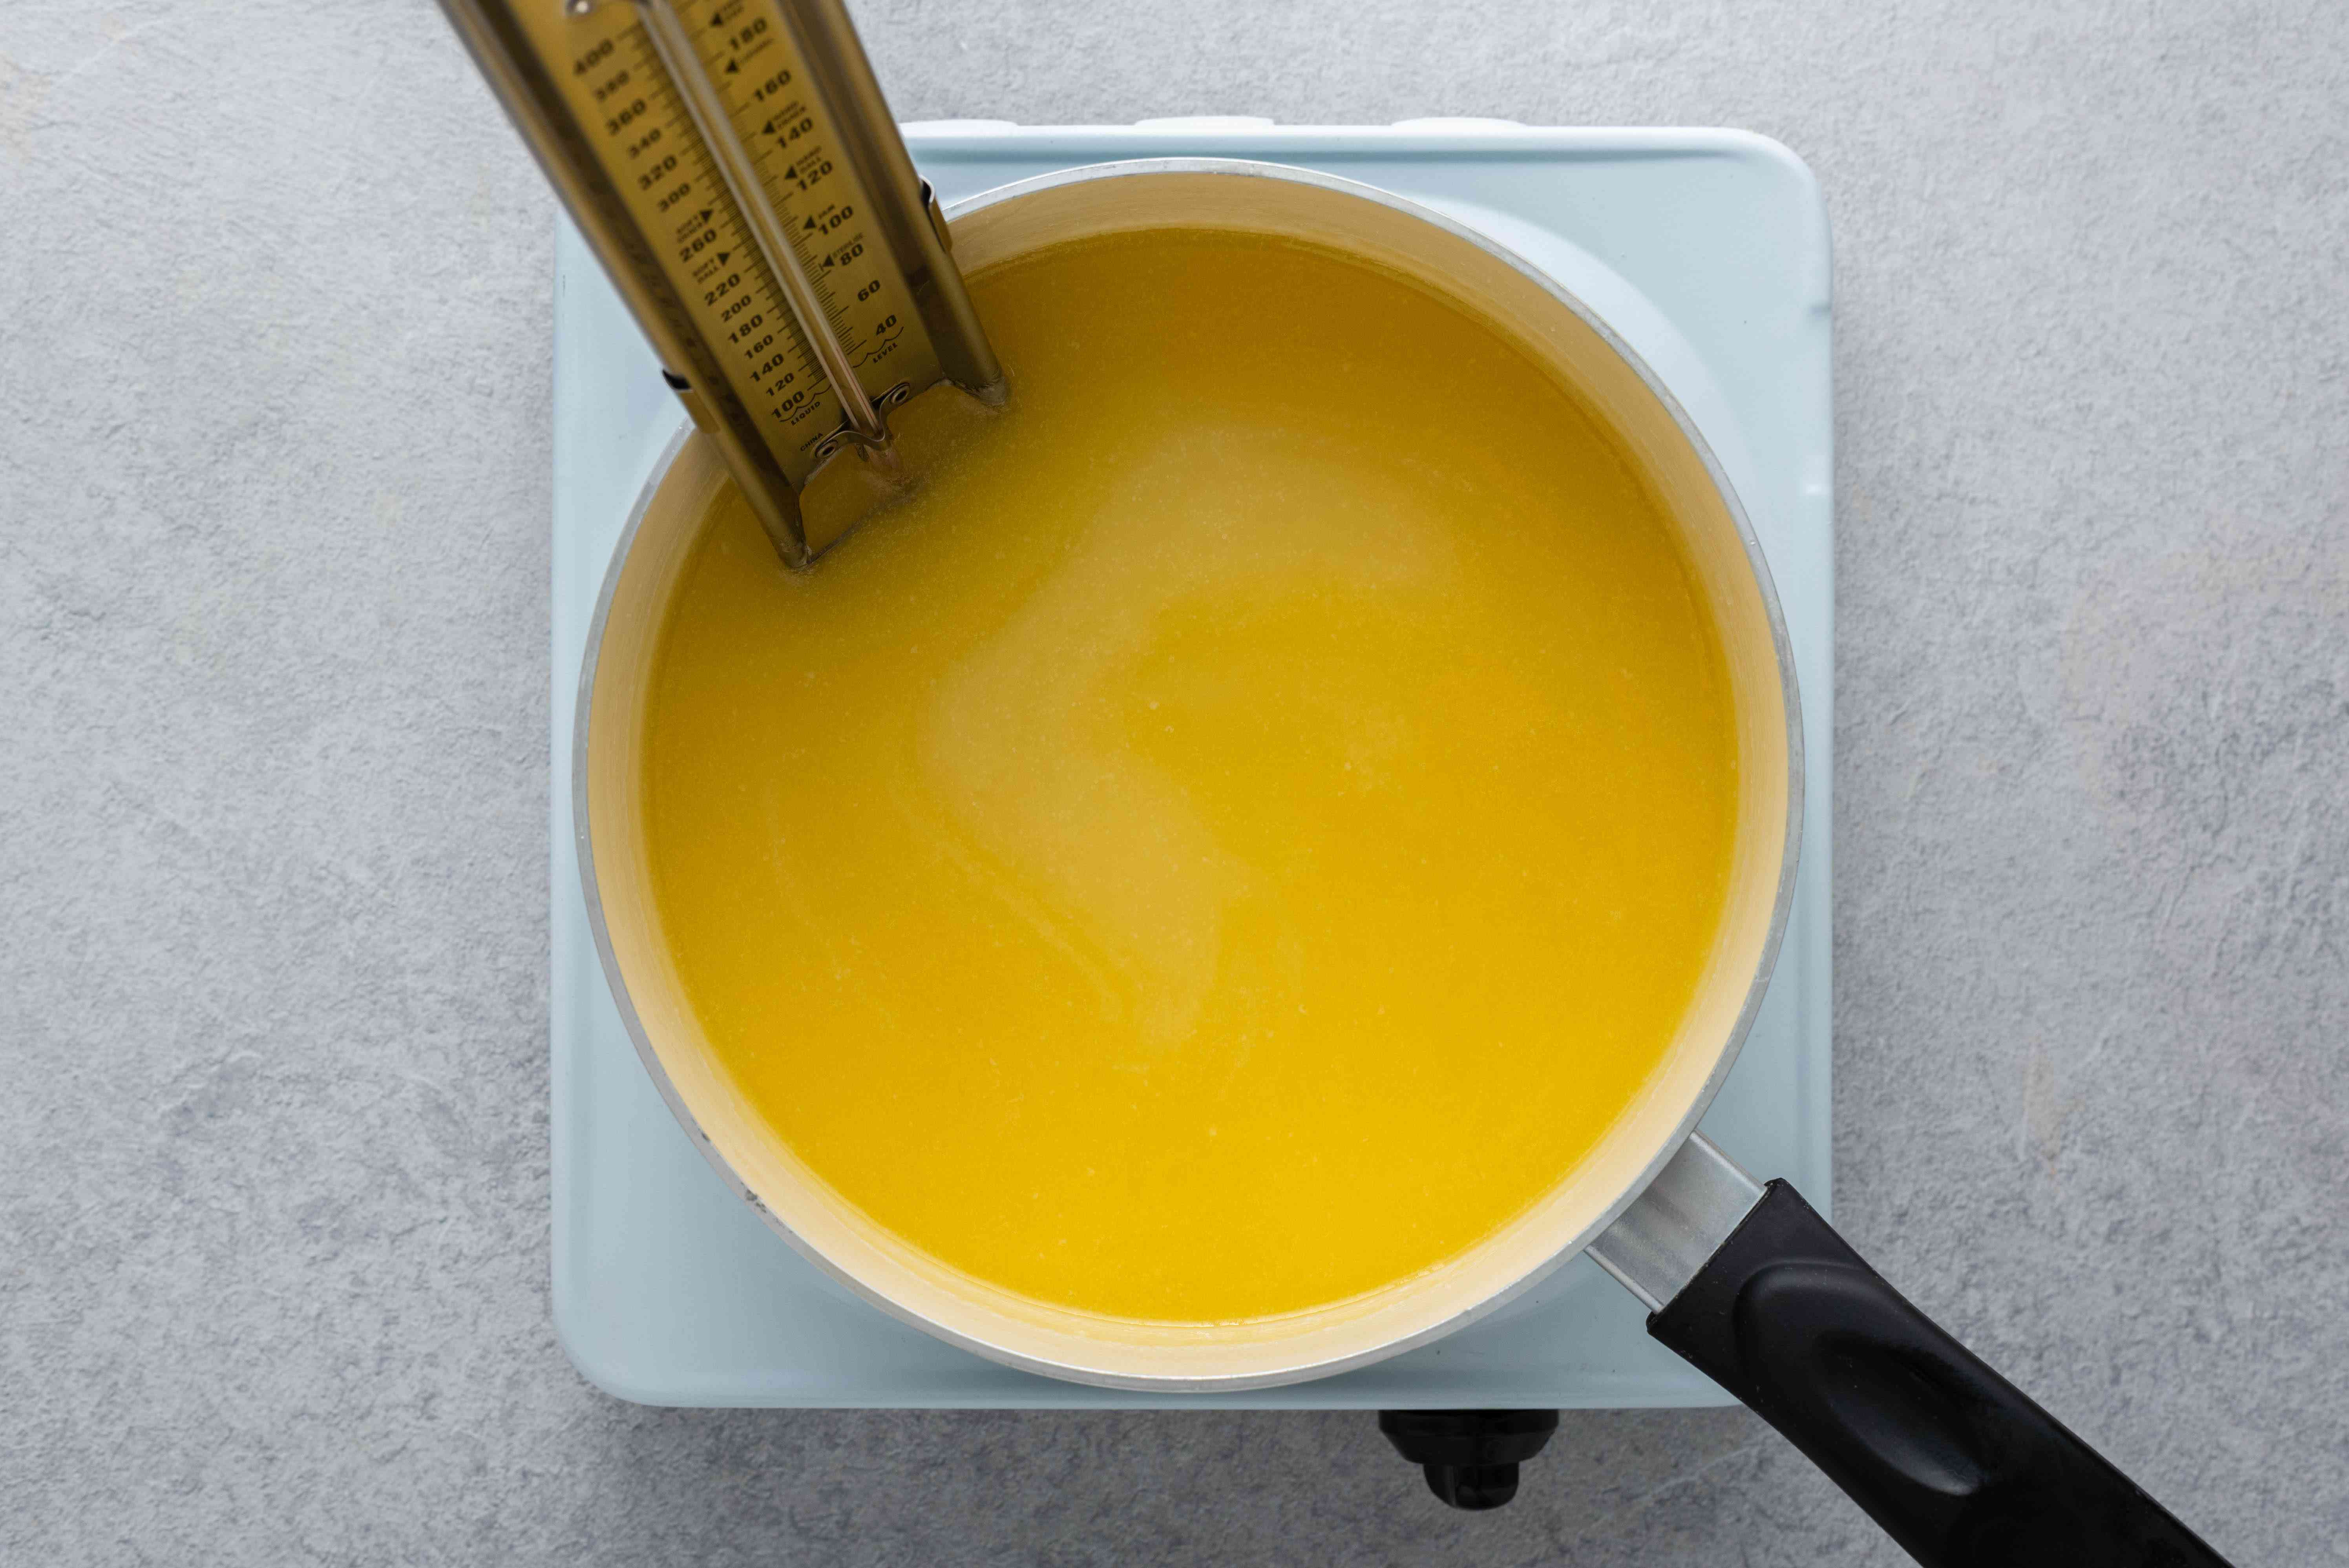 cooking fudge in a saucepan, candy thermometer